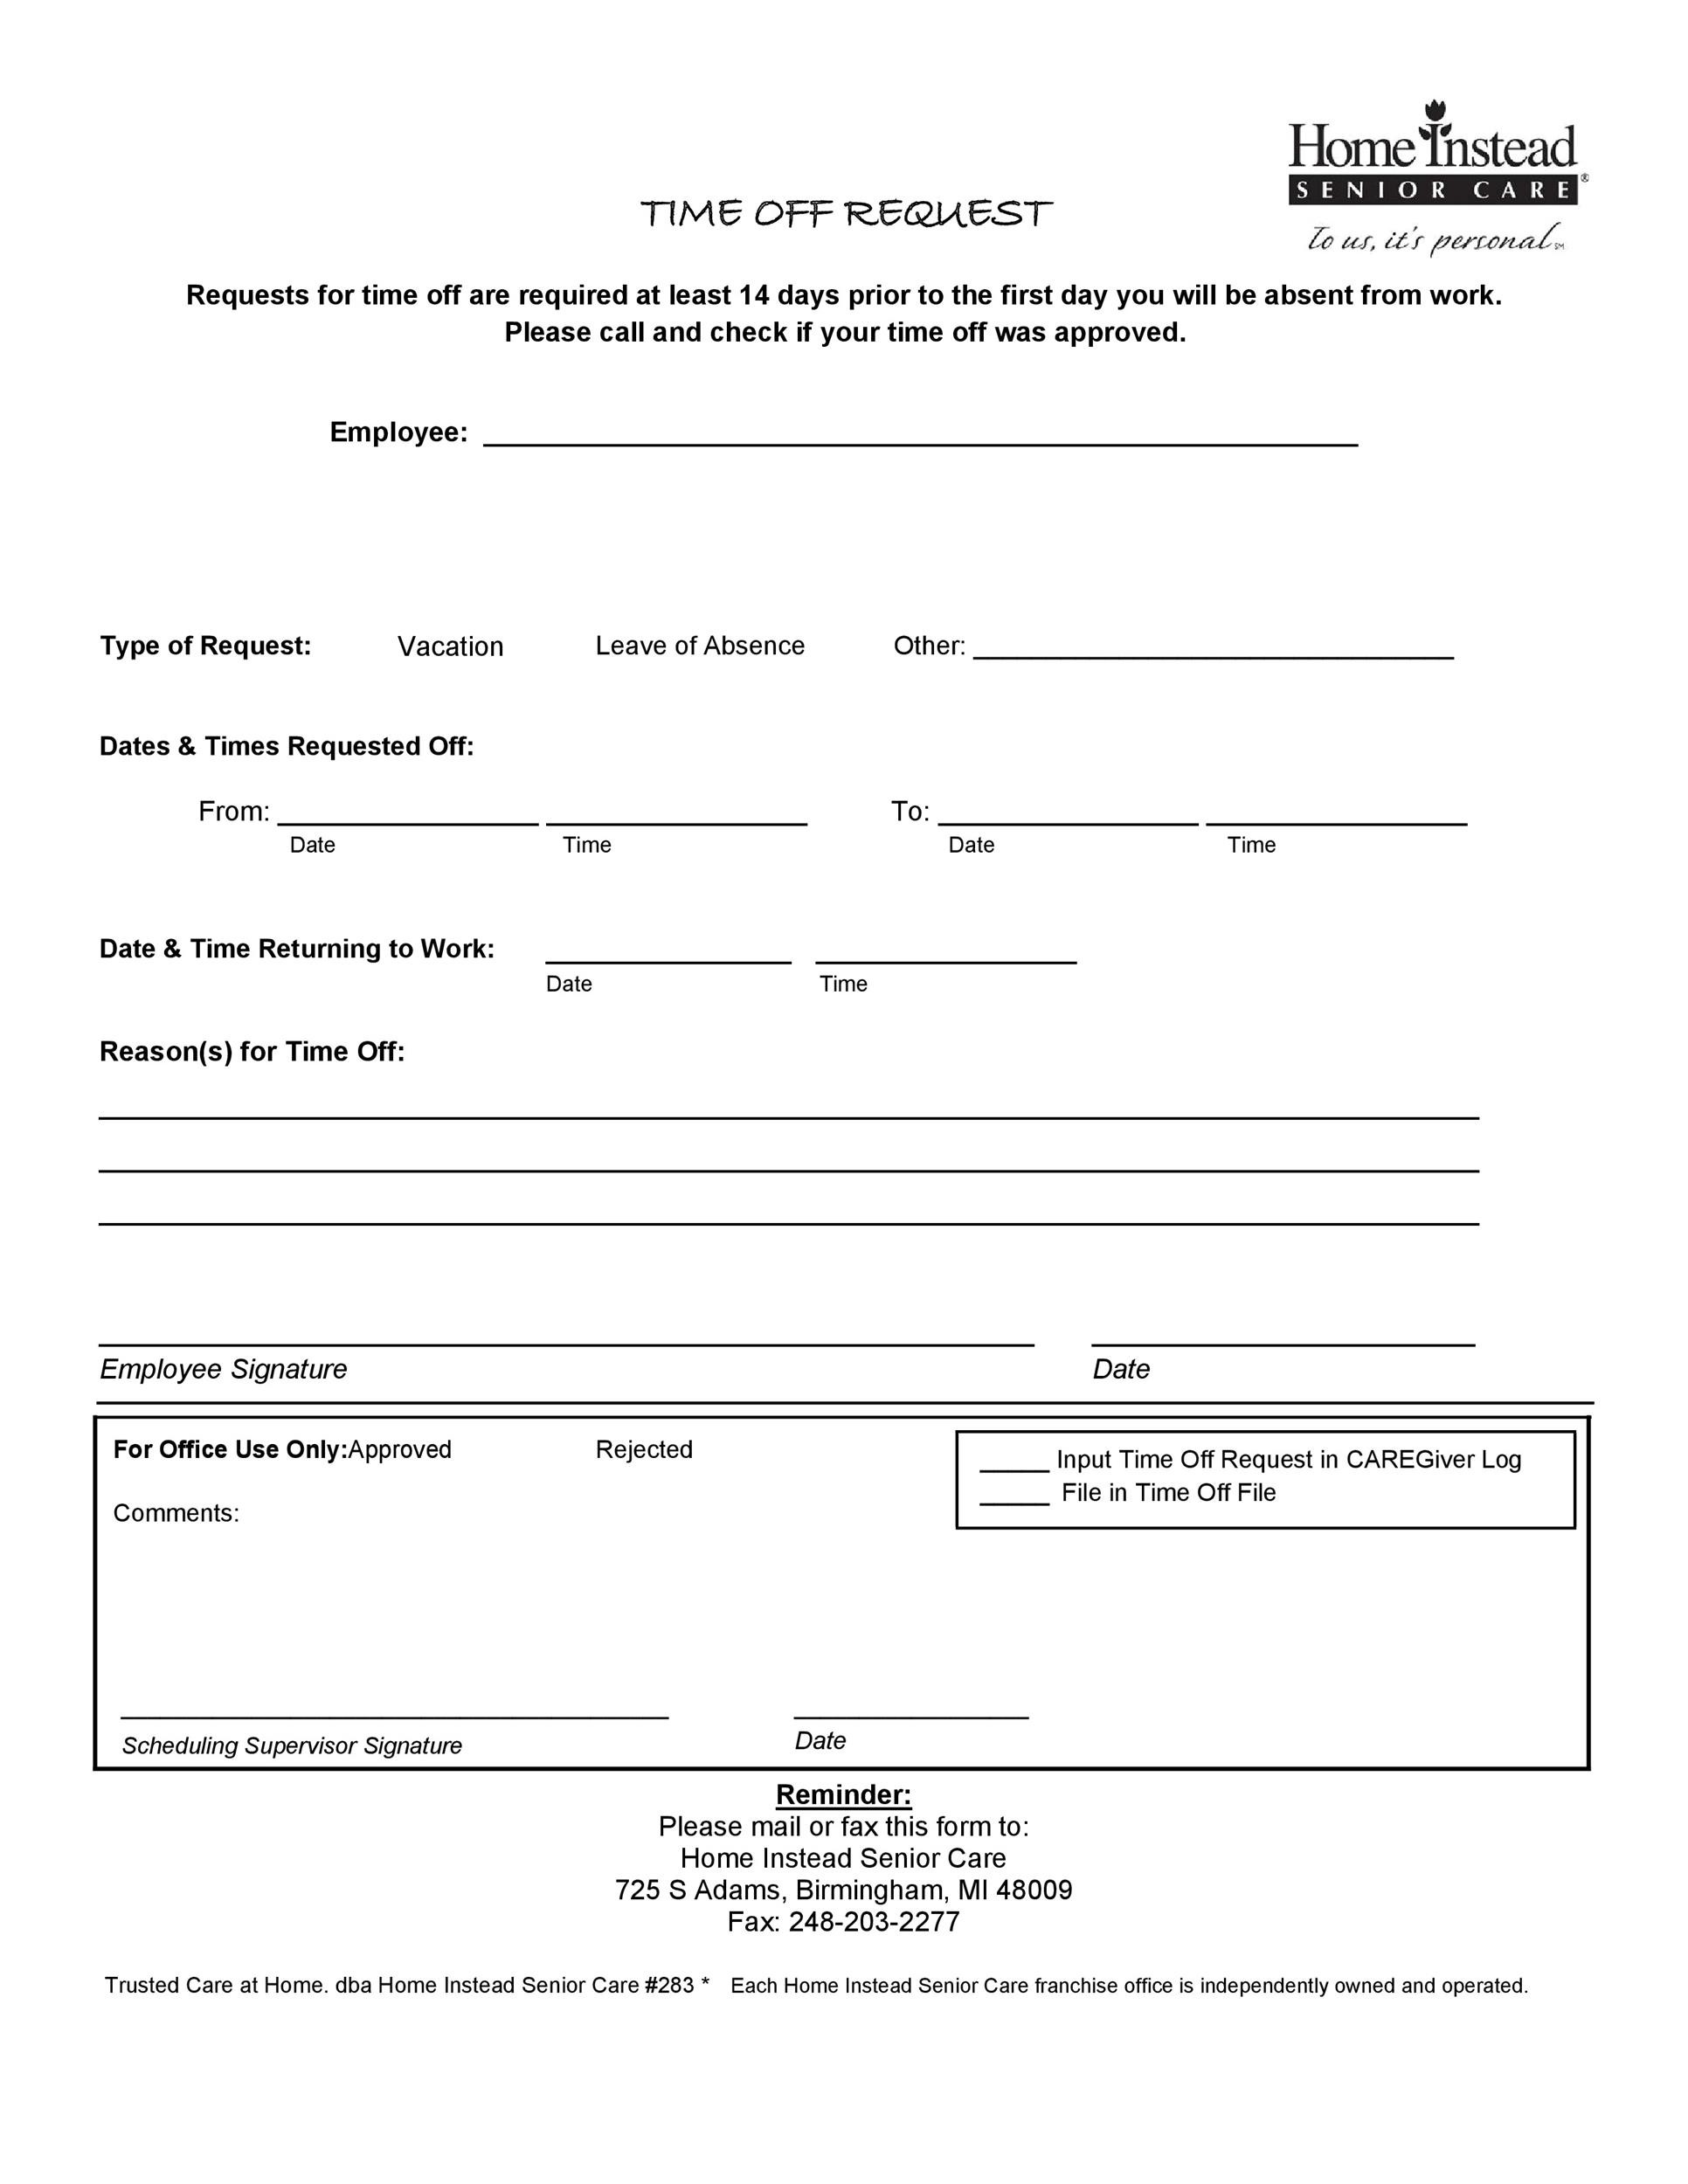 40+ Effective Time Off Request Forms  Templates - Template Lab - request for time off form